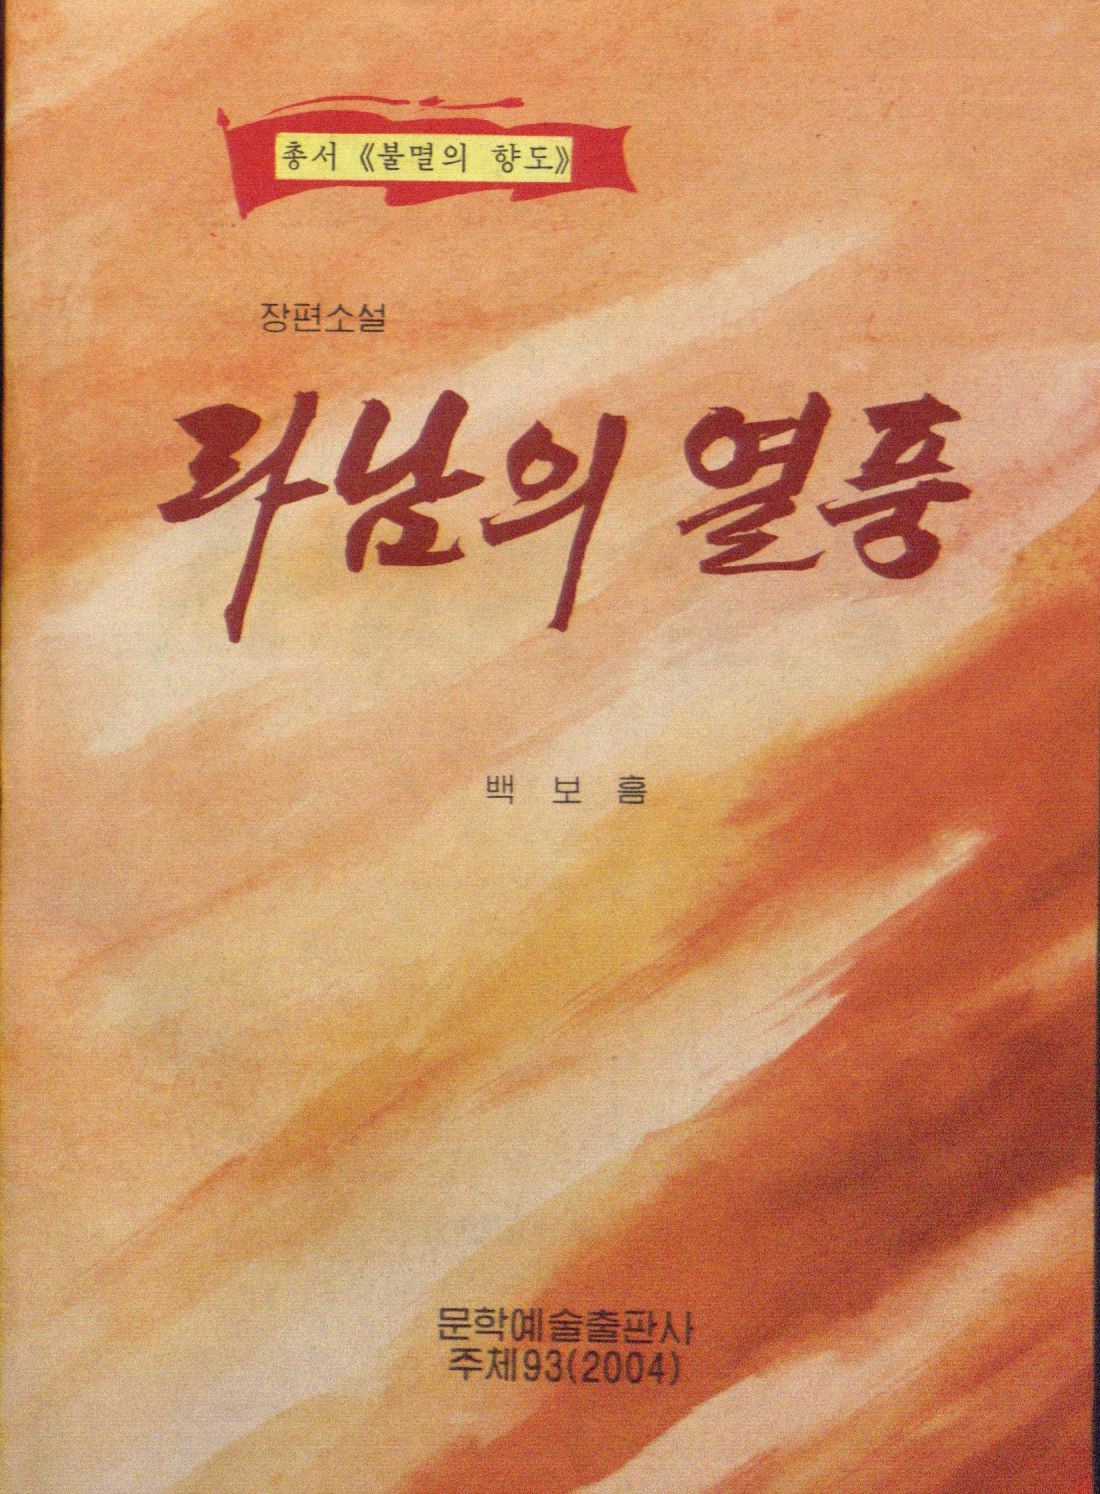 title page of 라남의 열풍